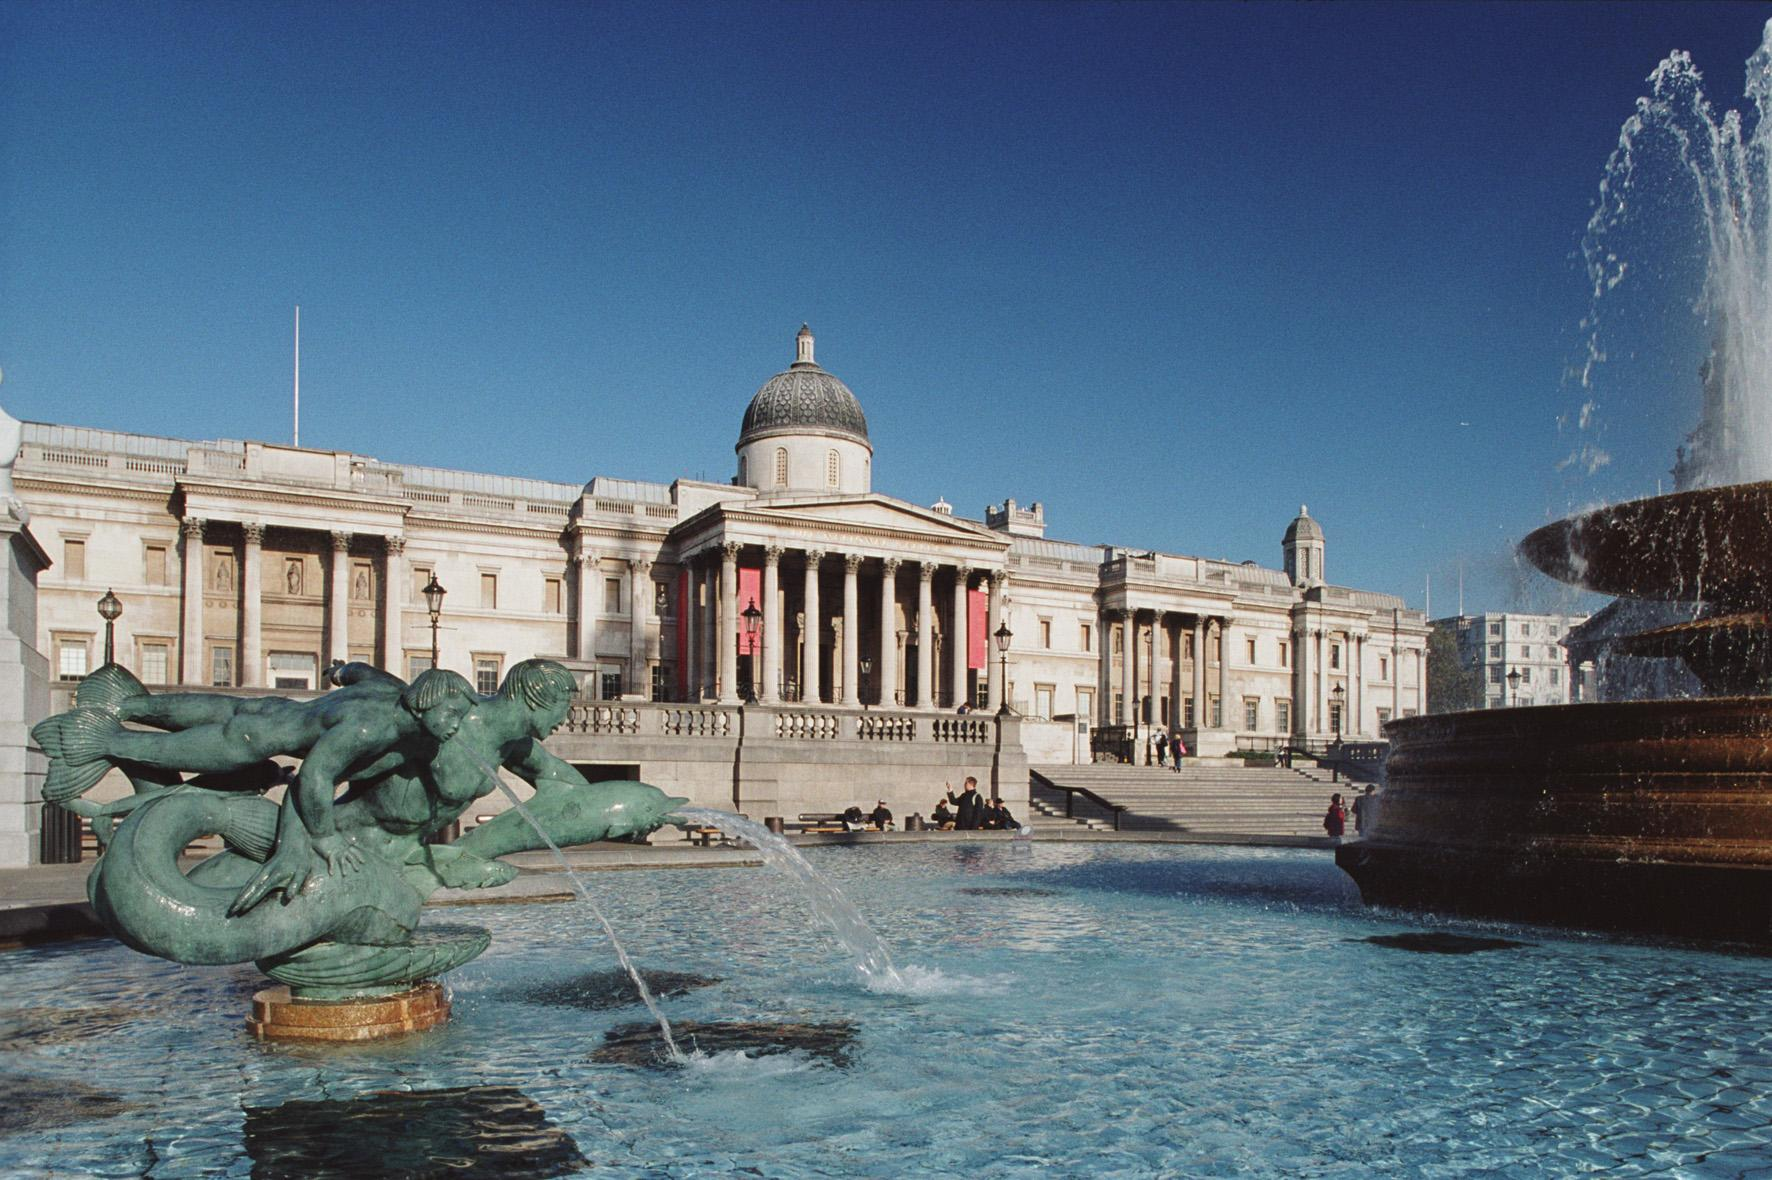 The National Gallery Quiz with 20% off at the Treasure Pub